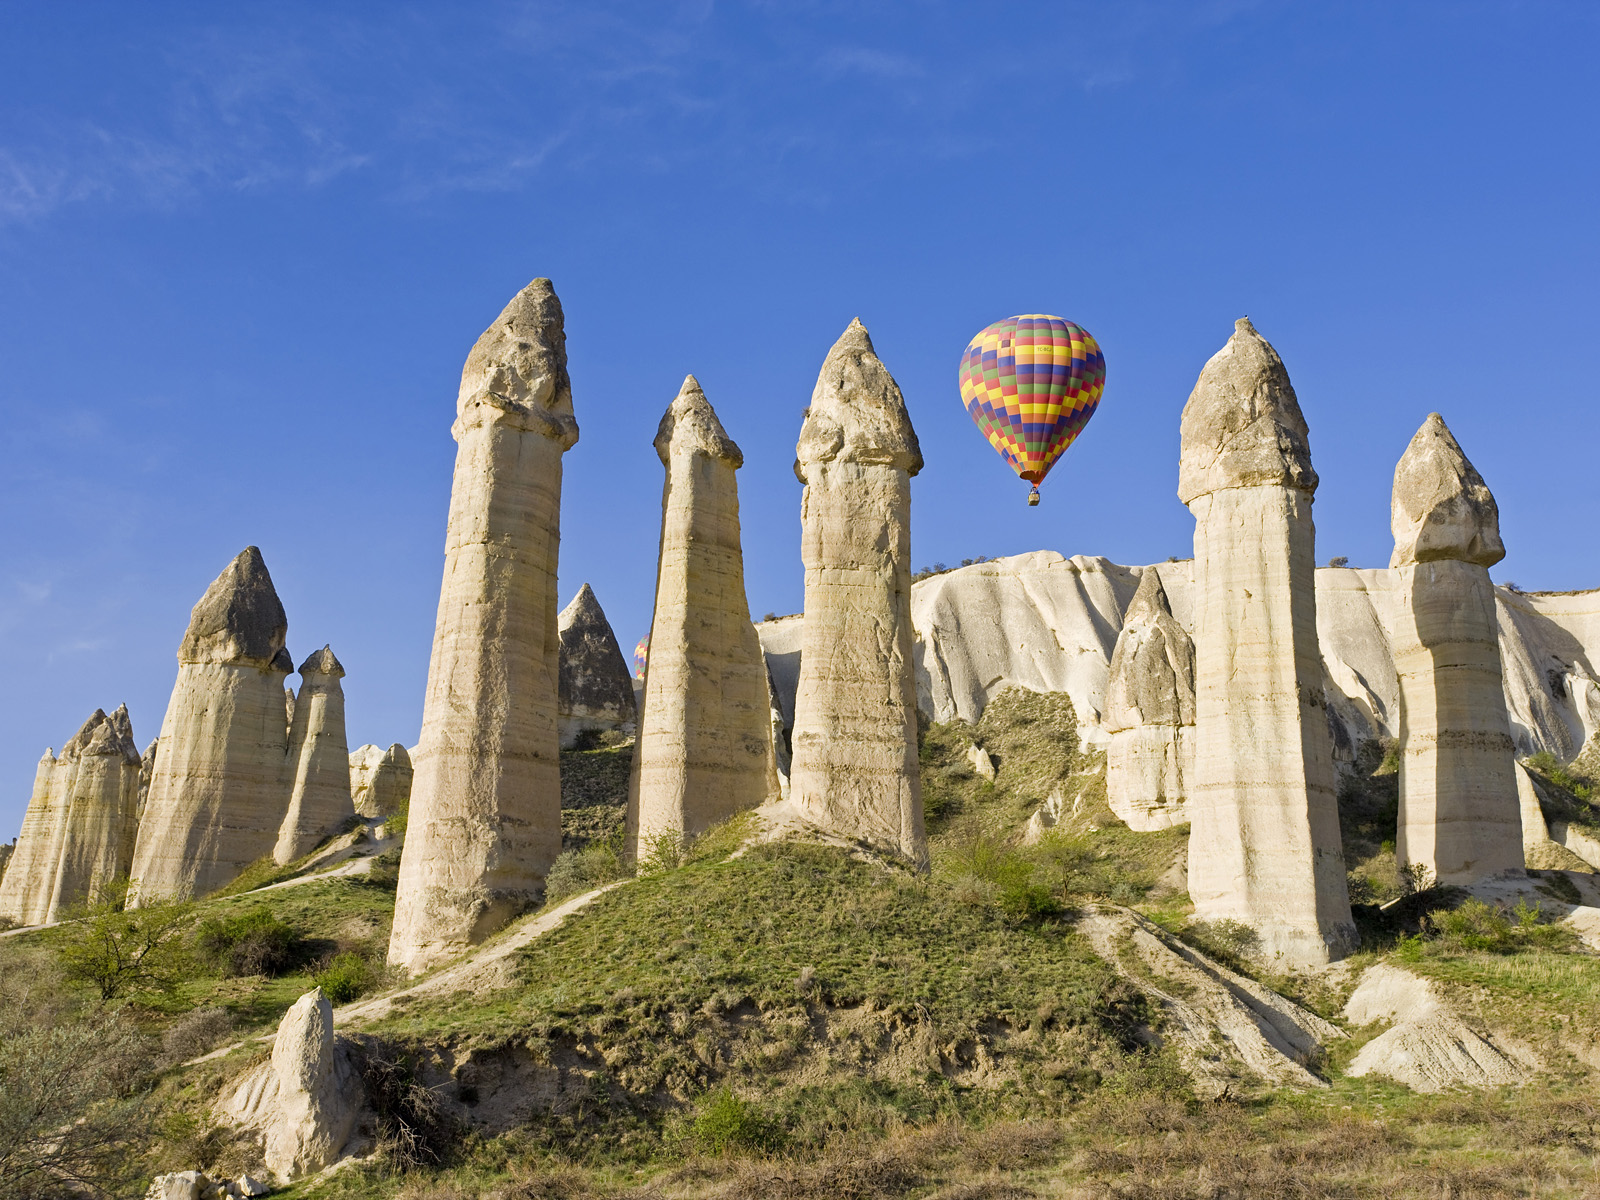 April 2008, Cappadocia, Turkey --- Hot Air balloon over Volcanic tufa rock pillars (Fairy Chimneys), Love Valley near Goreme, Cappadocia, Turkey --- Image by © Gavin Hellier/JAI/Corbis